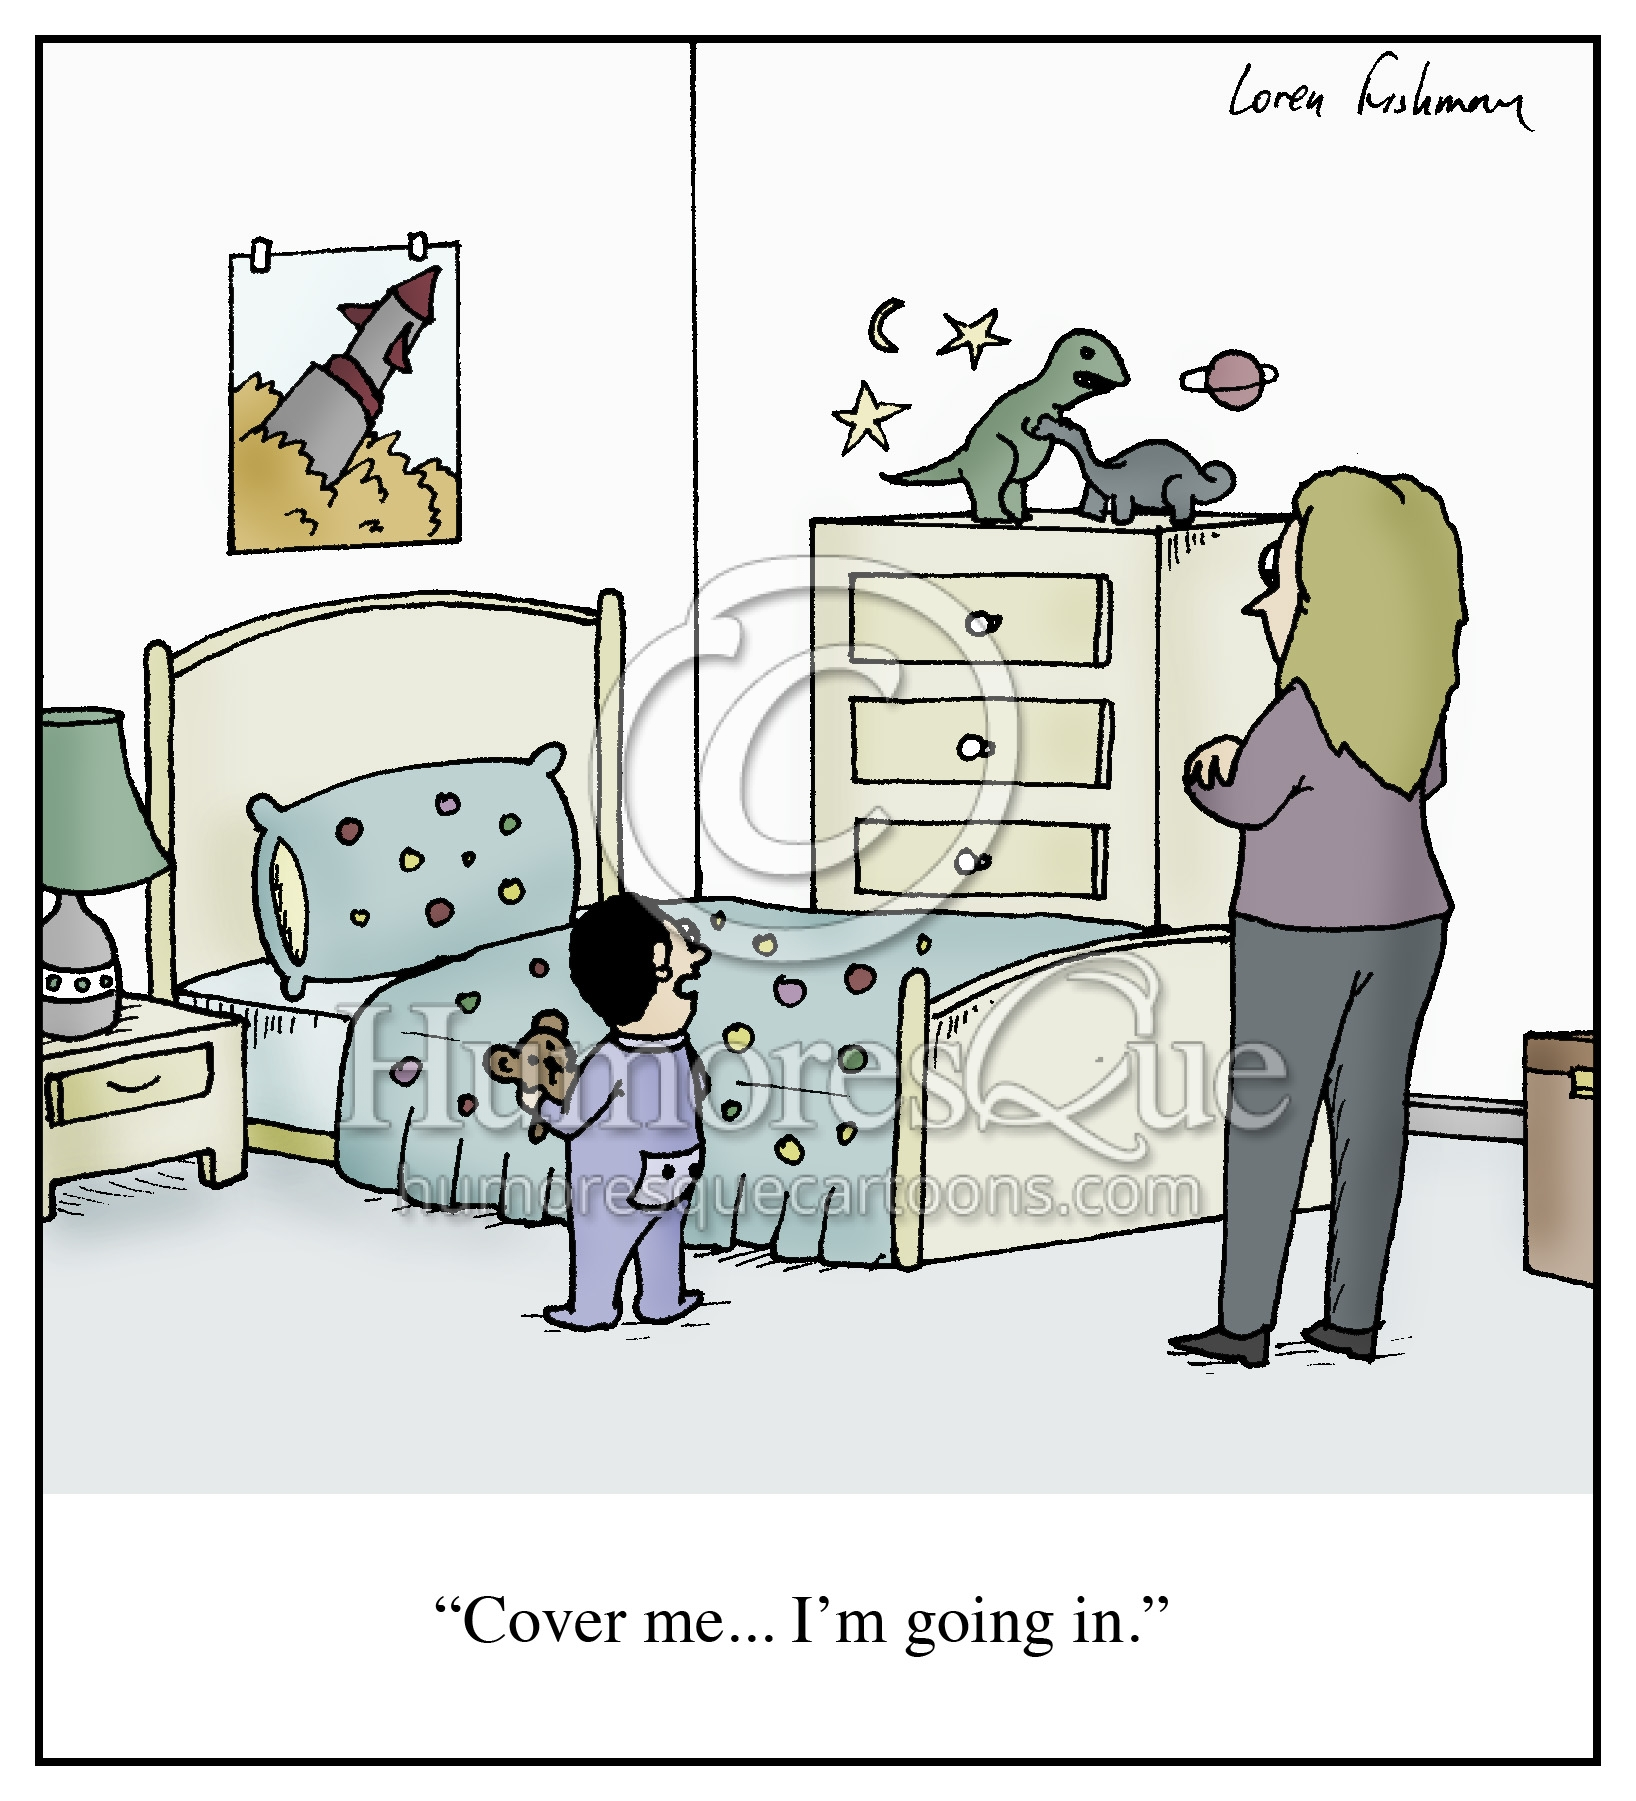 tucking in with bear cover me kid cartoon